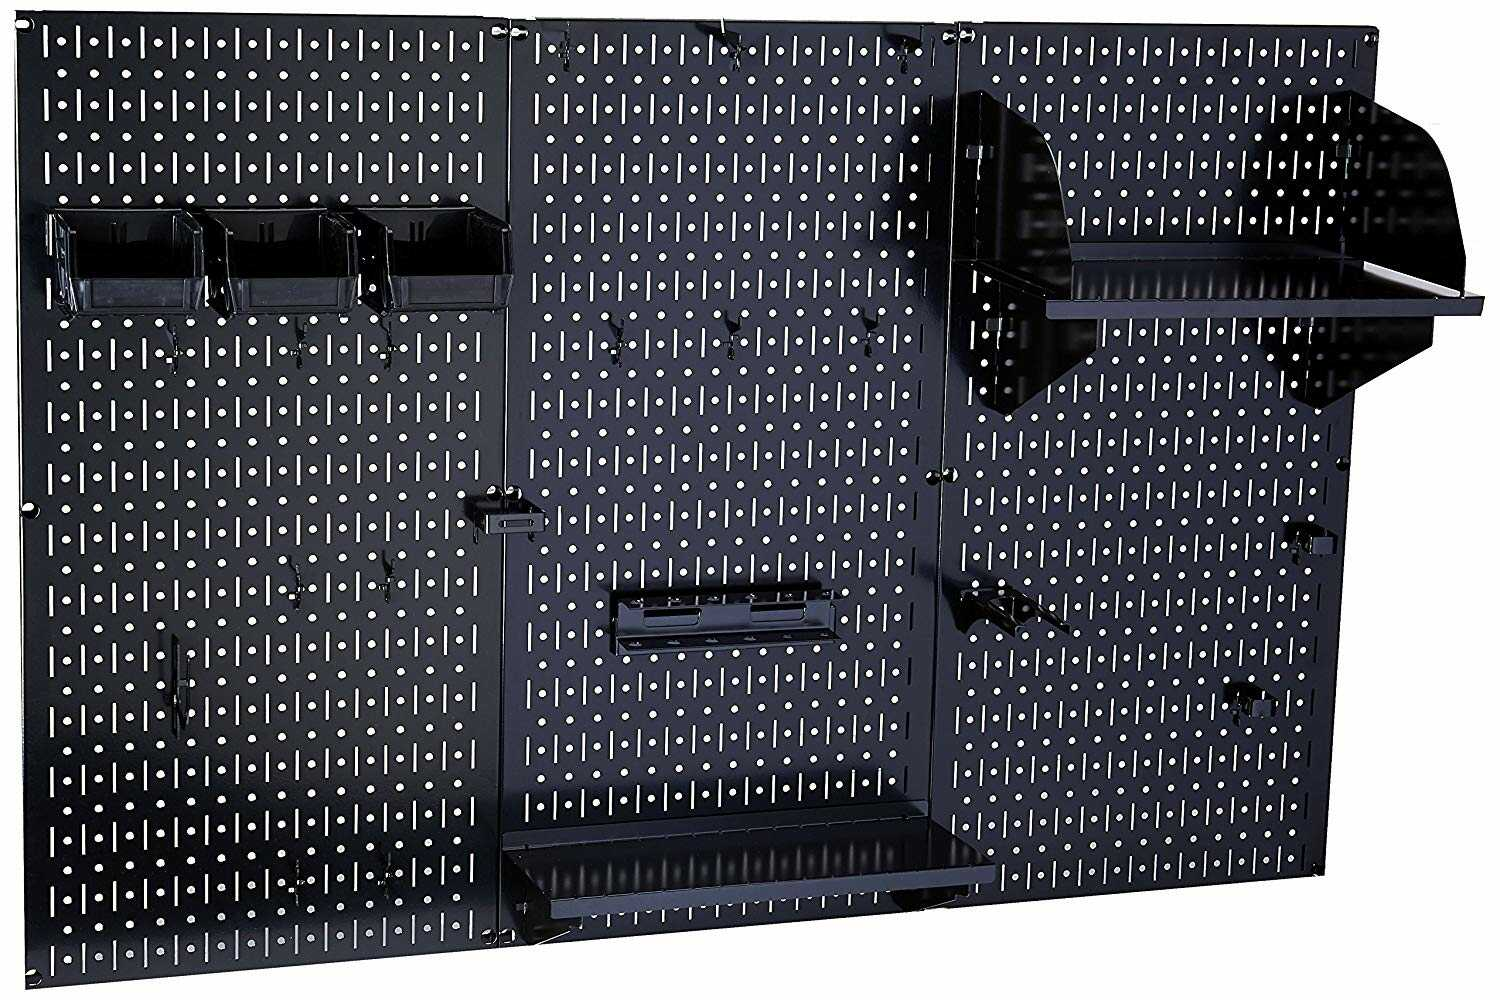 Black model pegboard with trays, bins, shelves attached